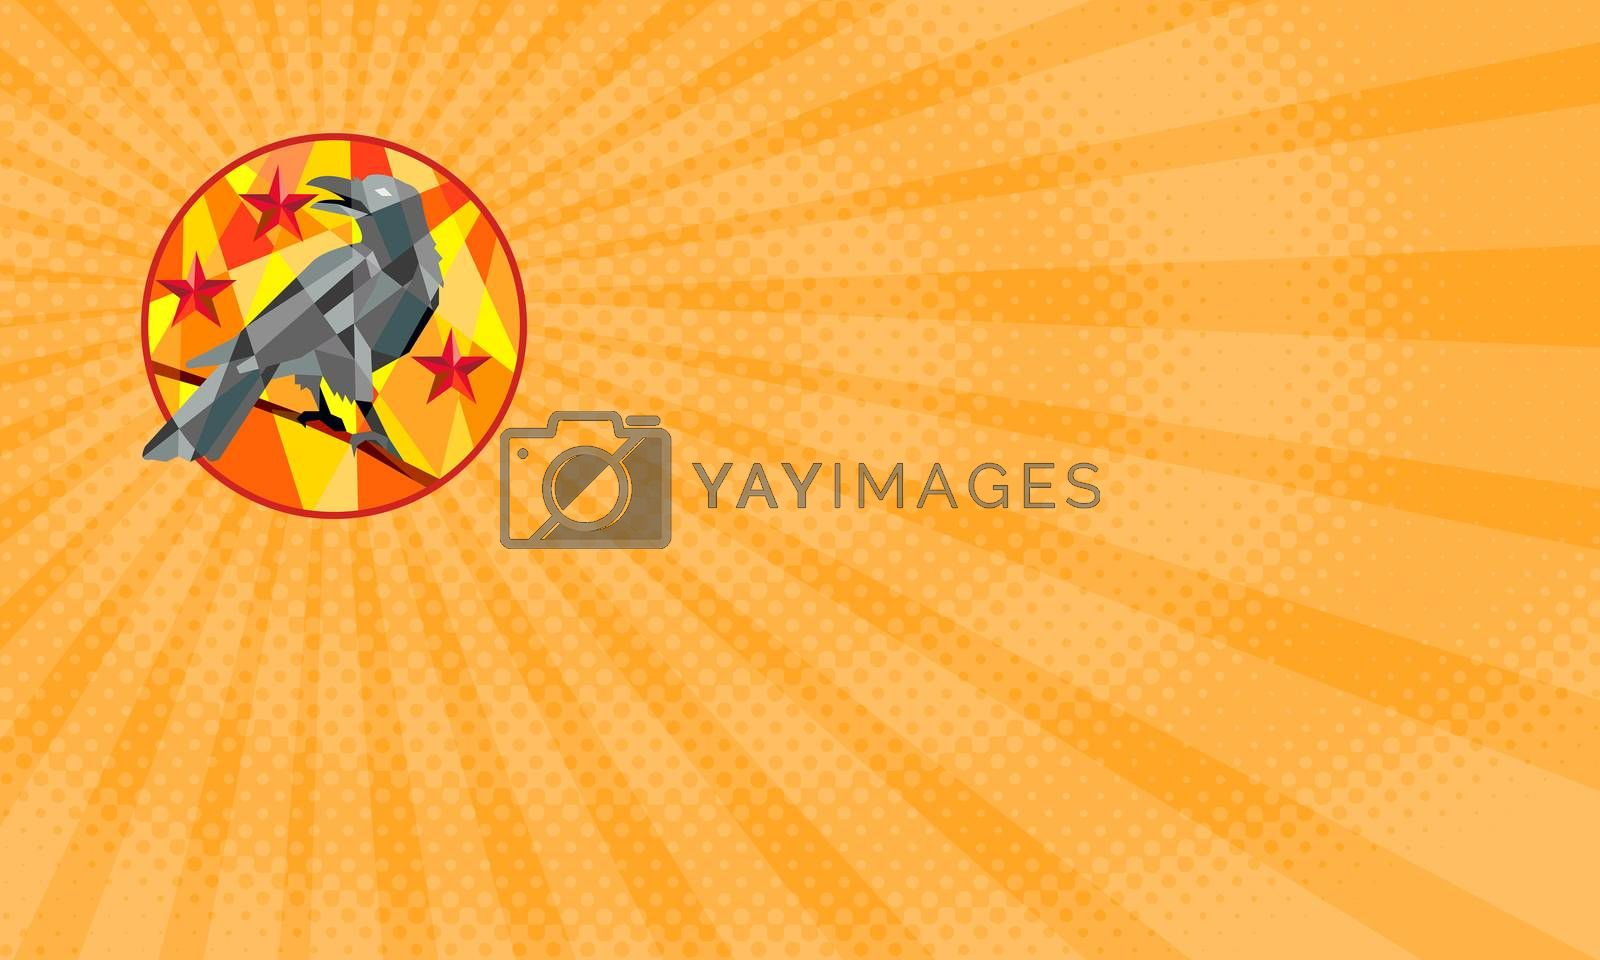 Business card showing Low polygon style illustration of a crow bird perched on a piece of wood looking back set inside circle with stars in the background.